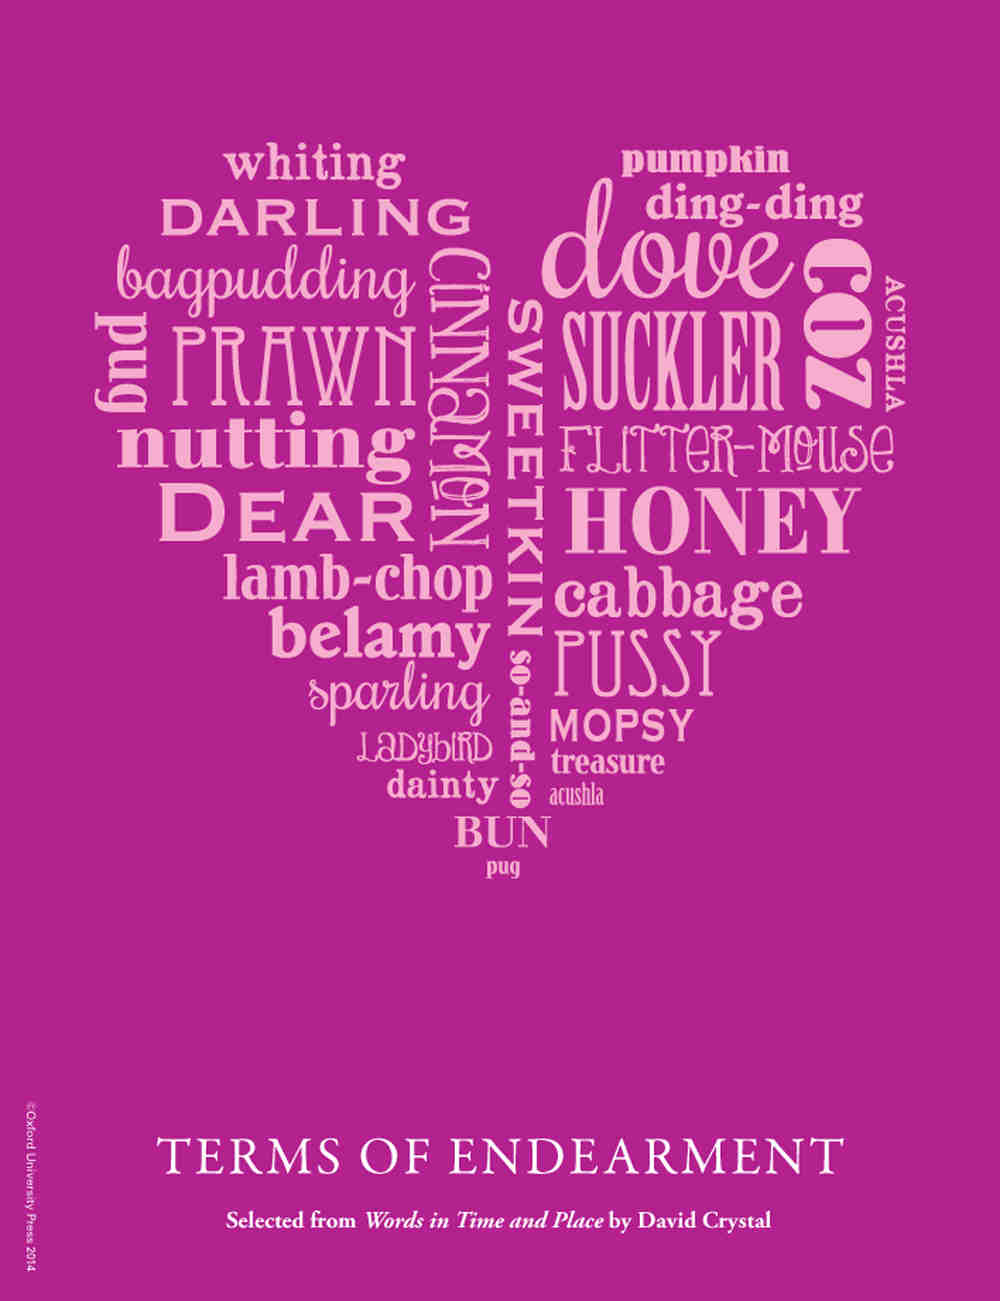 List of terms of endearment for lovers